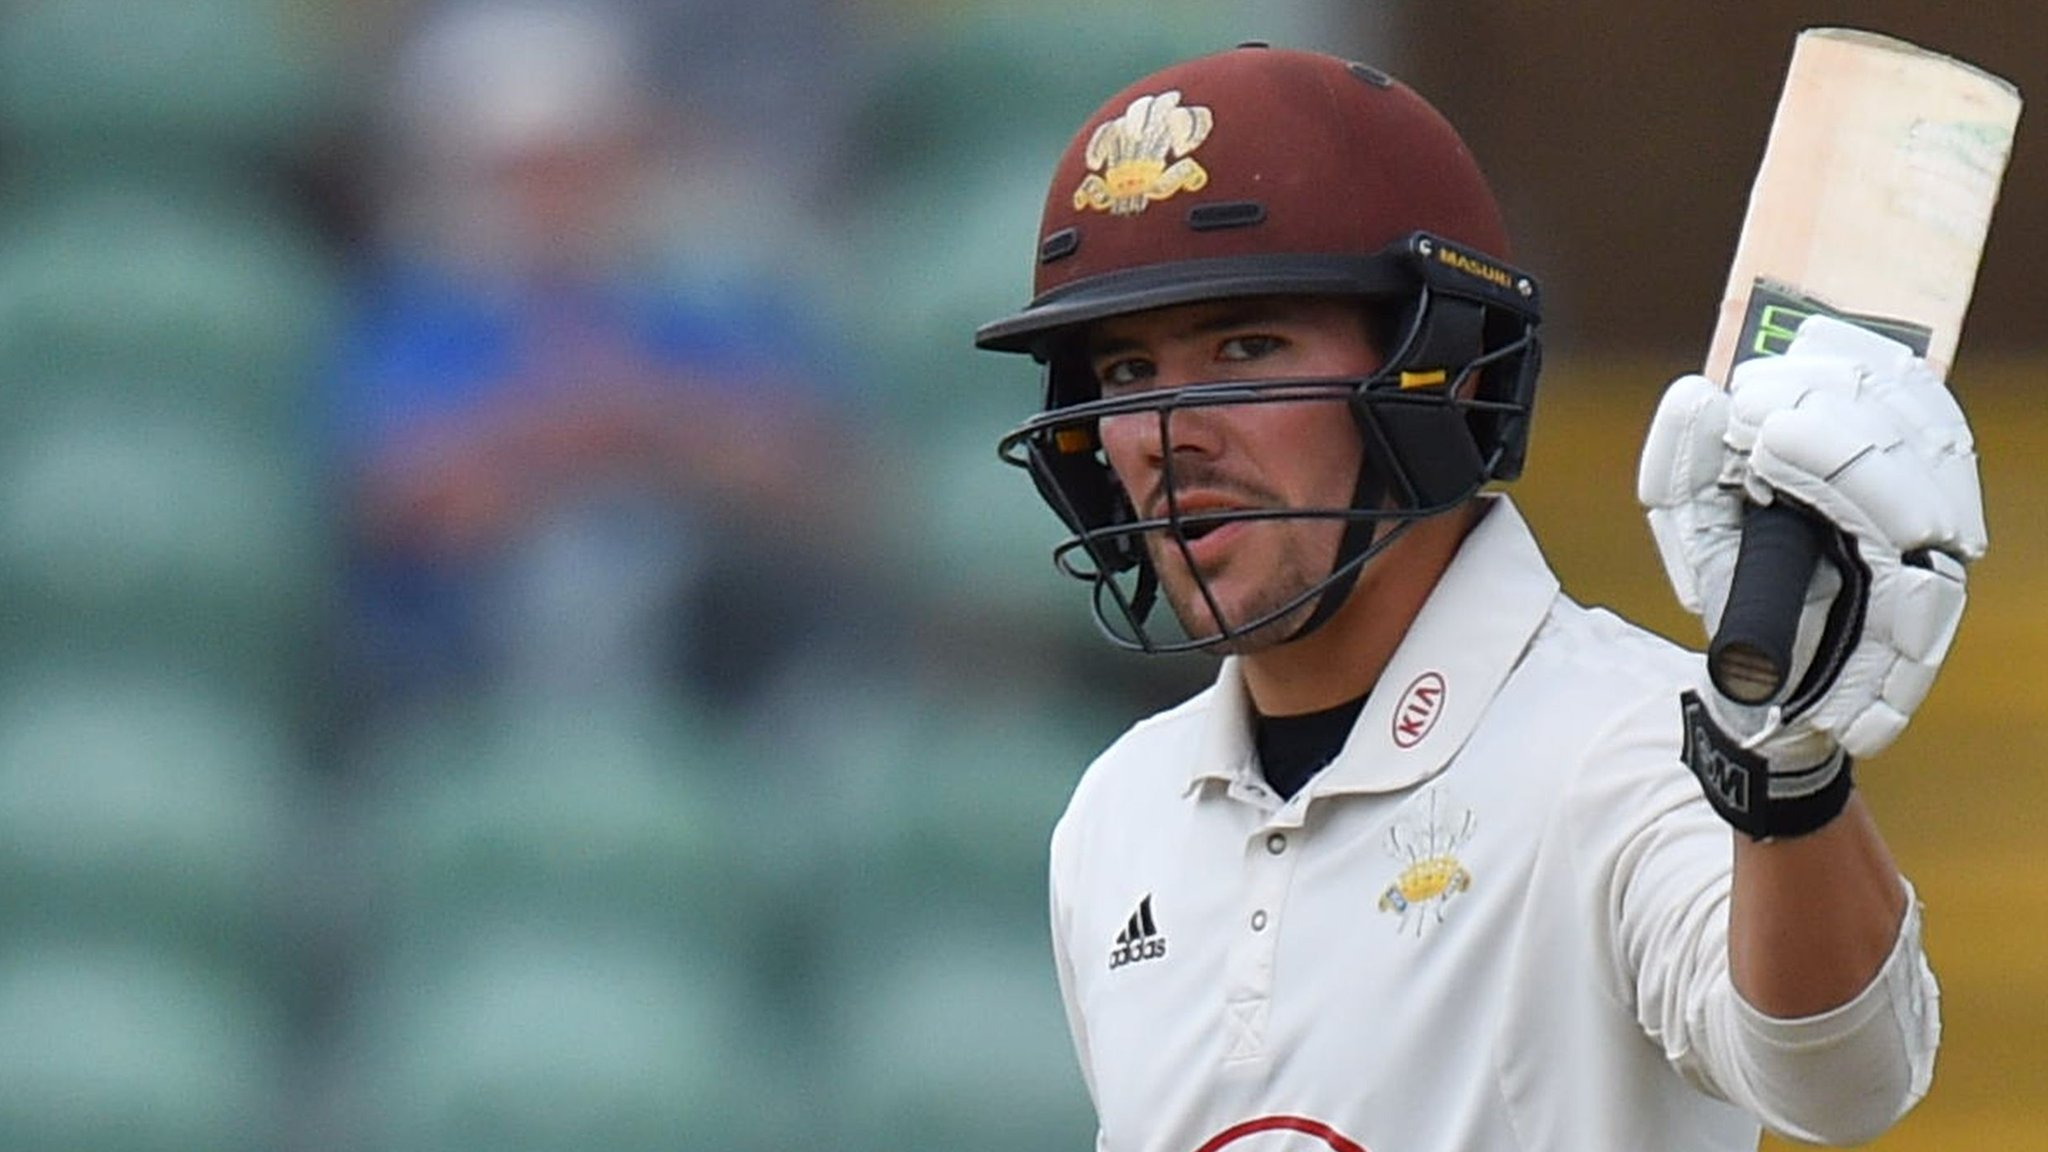 County Championship: Surrey dominate Somerset as Rory Burns makes runs again